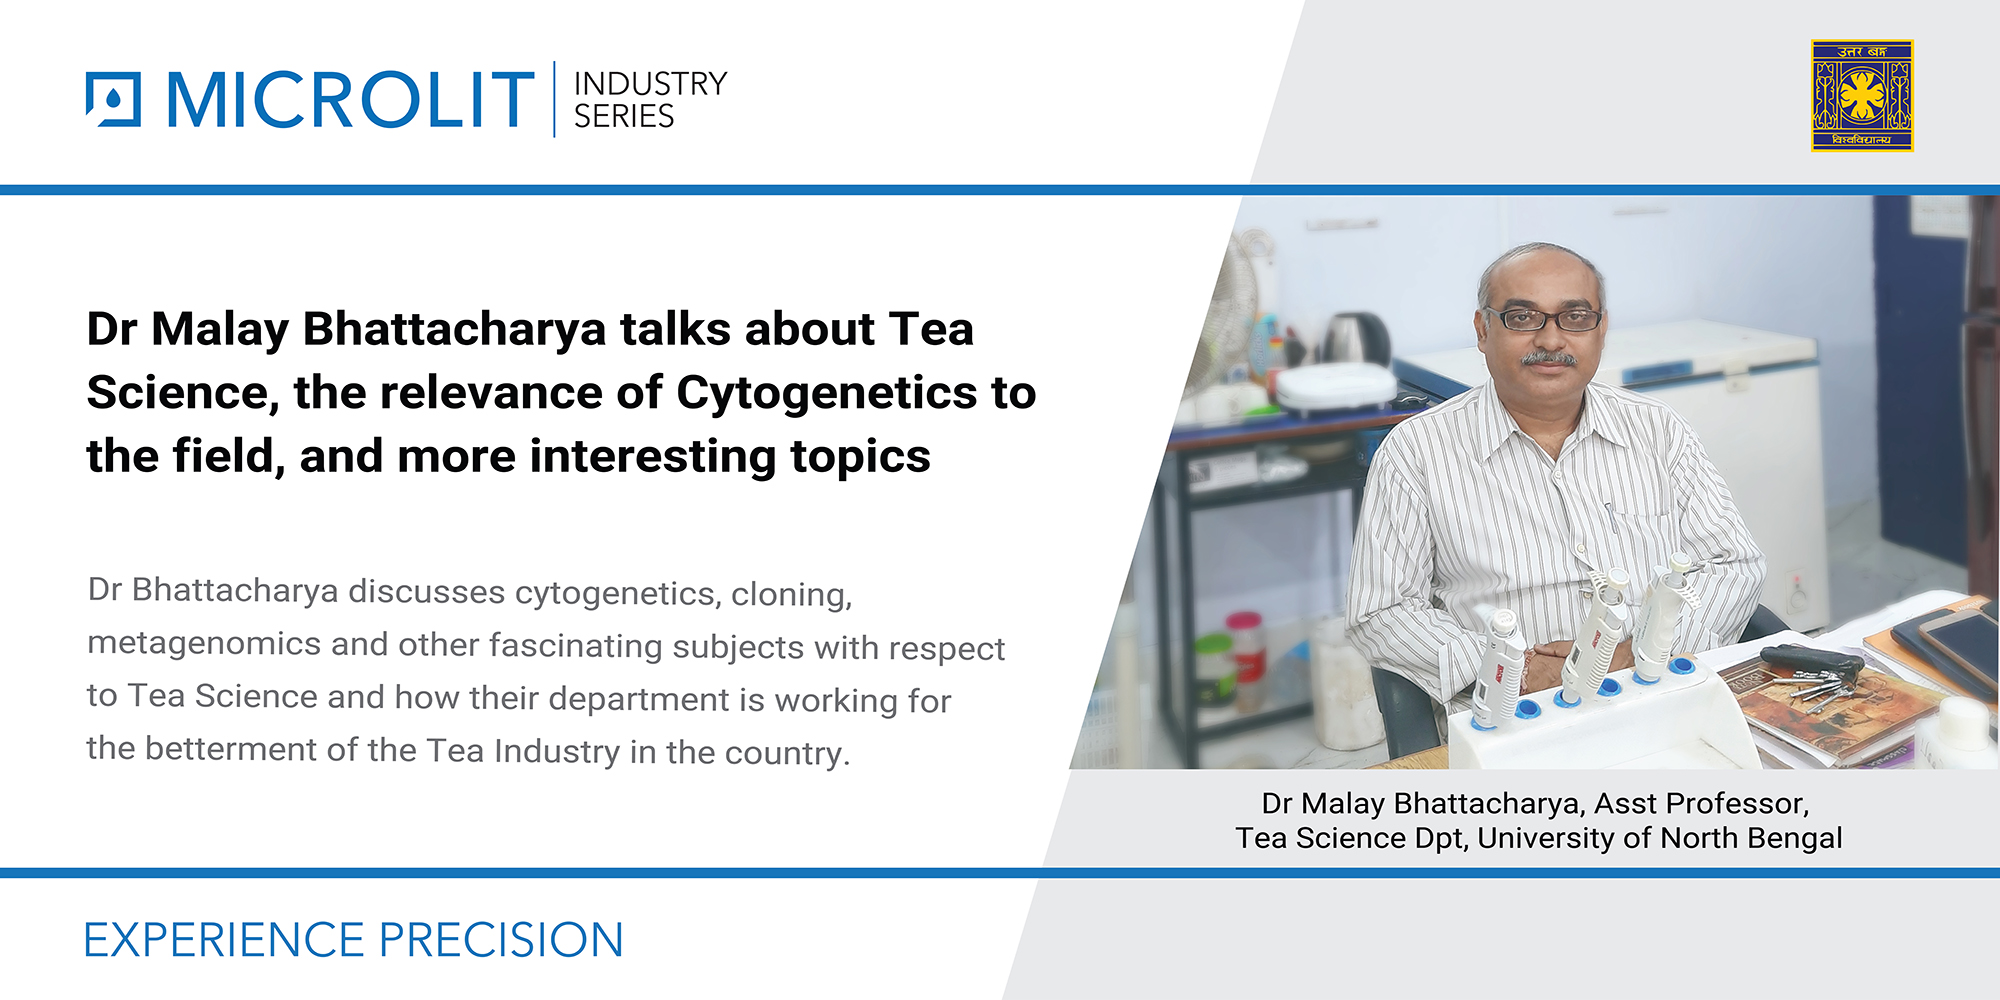 Dr Bhattacharya, Assistant Professor, Department of Tea Science, University of North Bengal discusses Tea Science, Cytogenetics, Tea Link and more